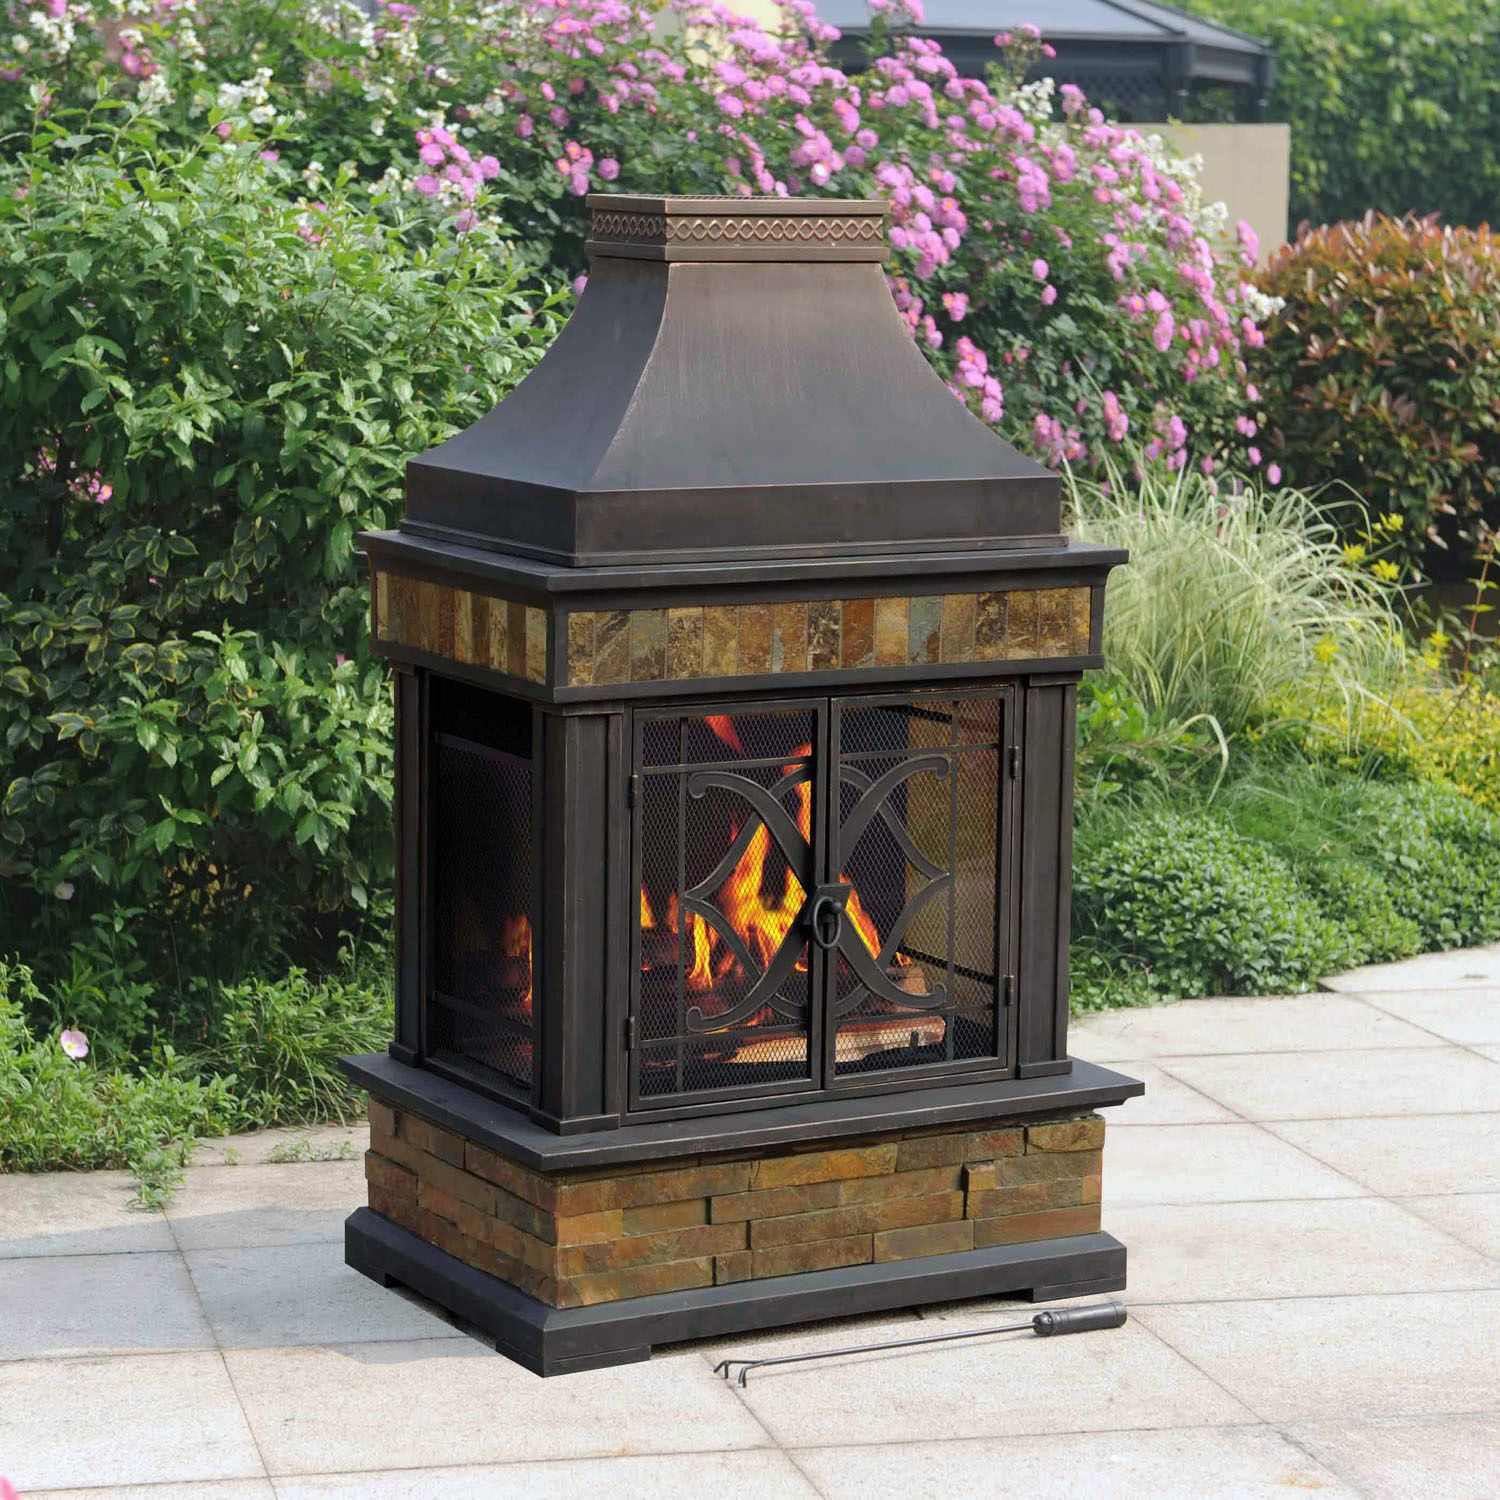 Portable Outdoor Fire Pit Propane